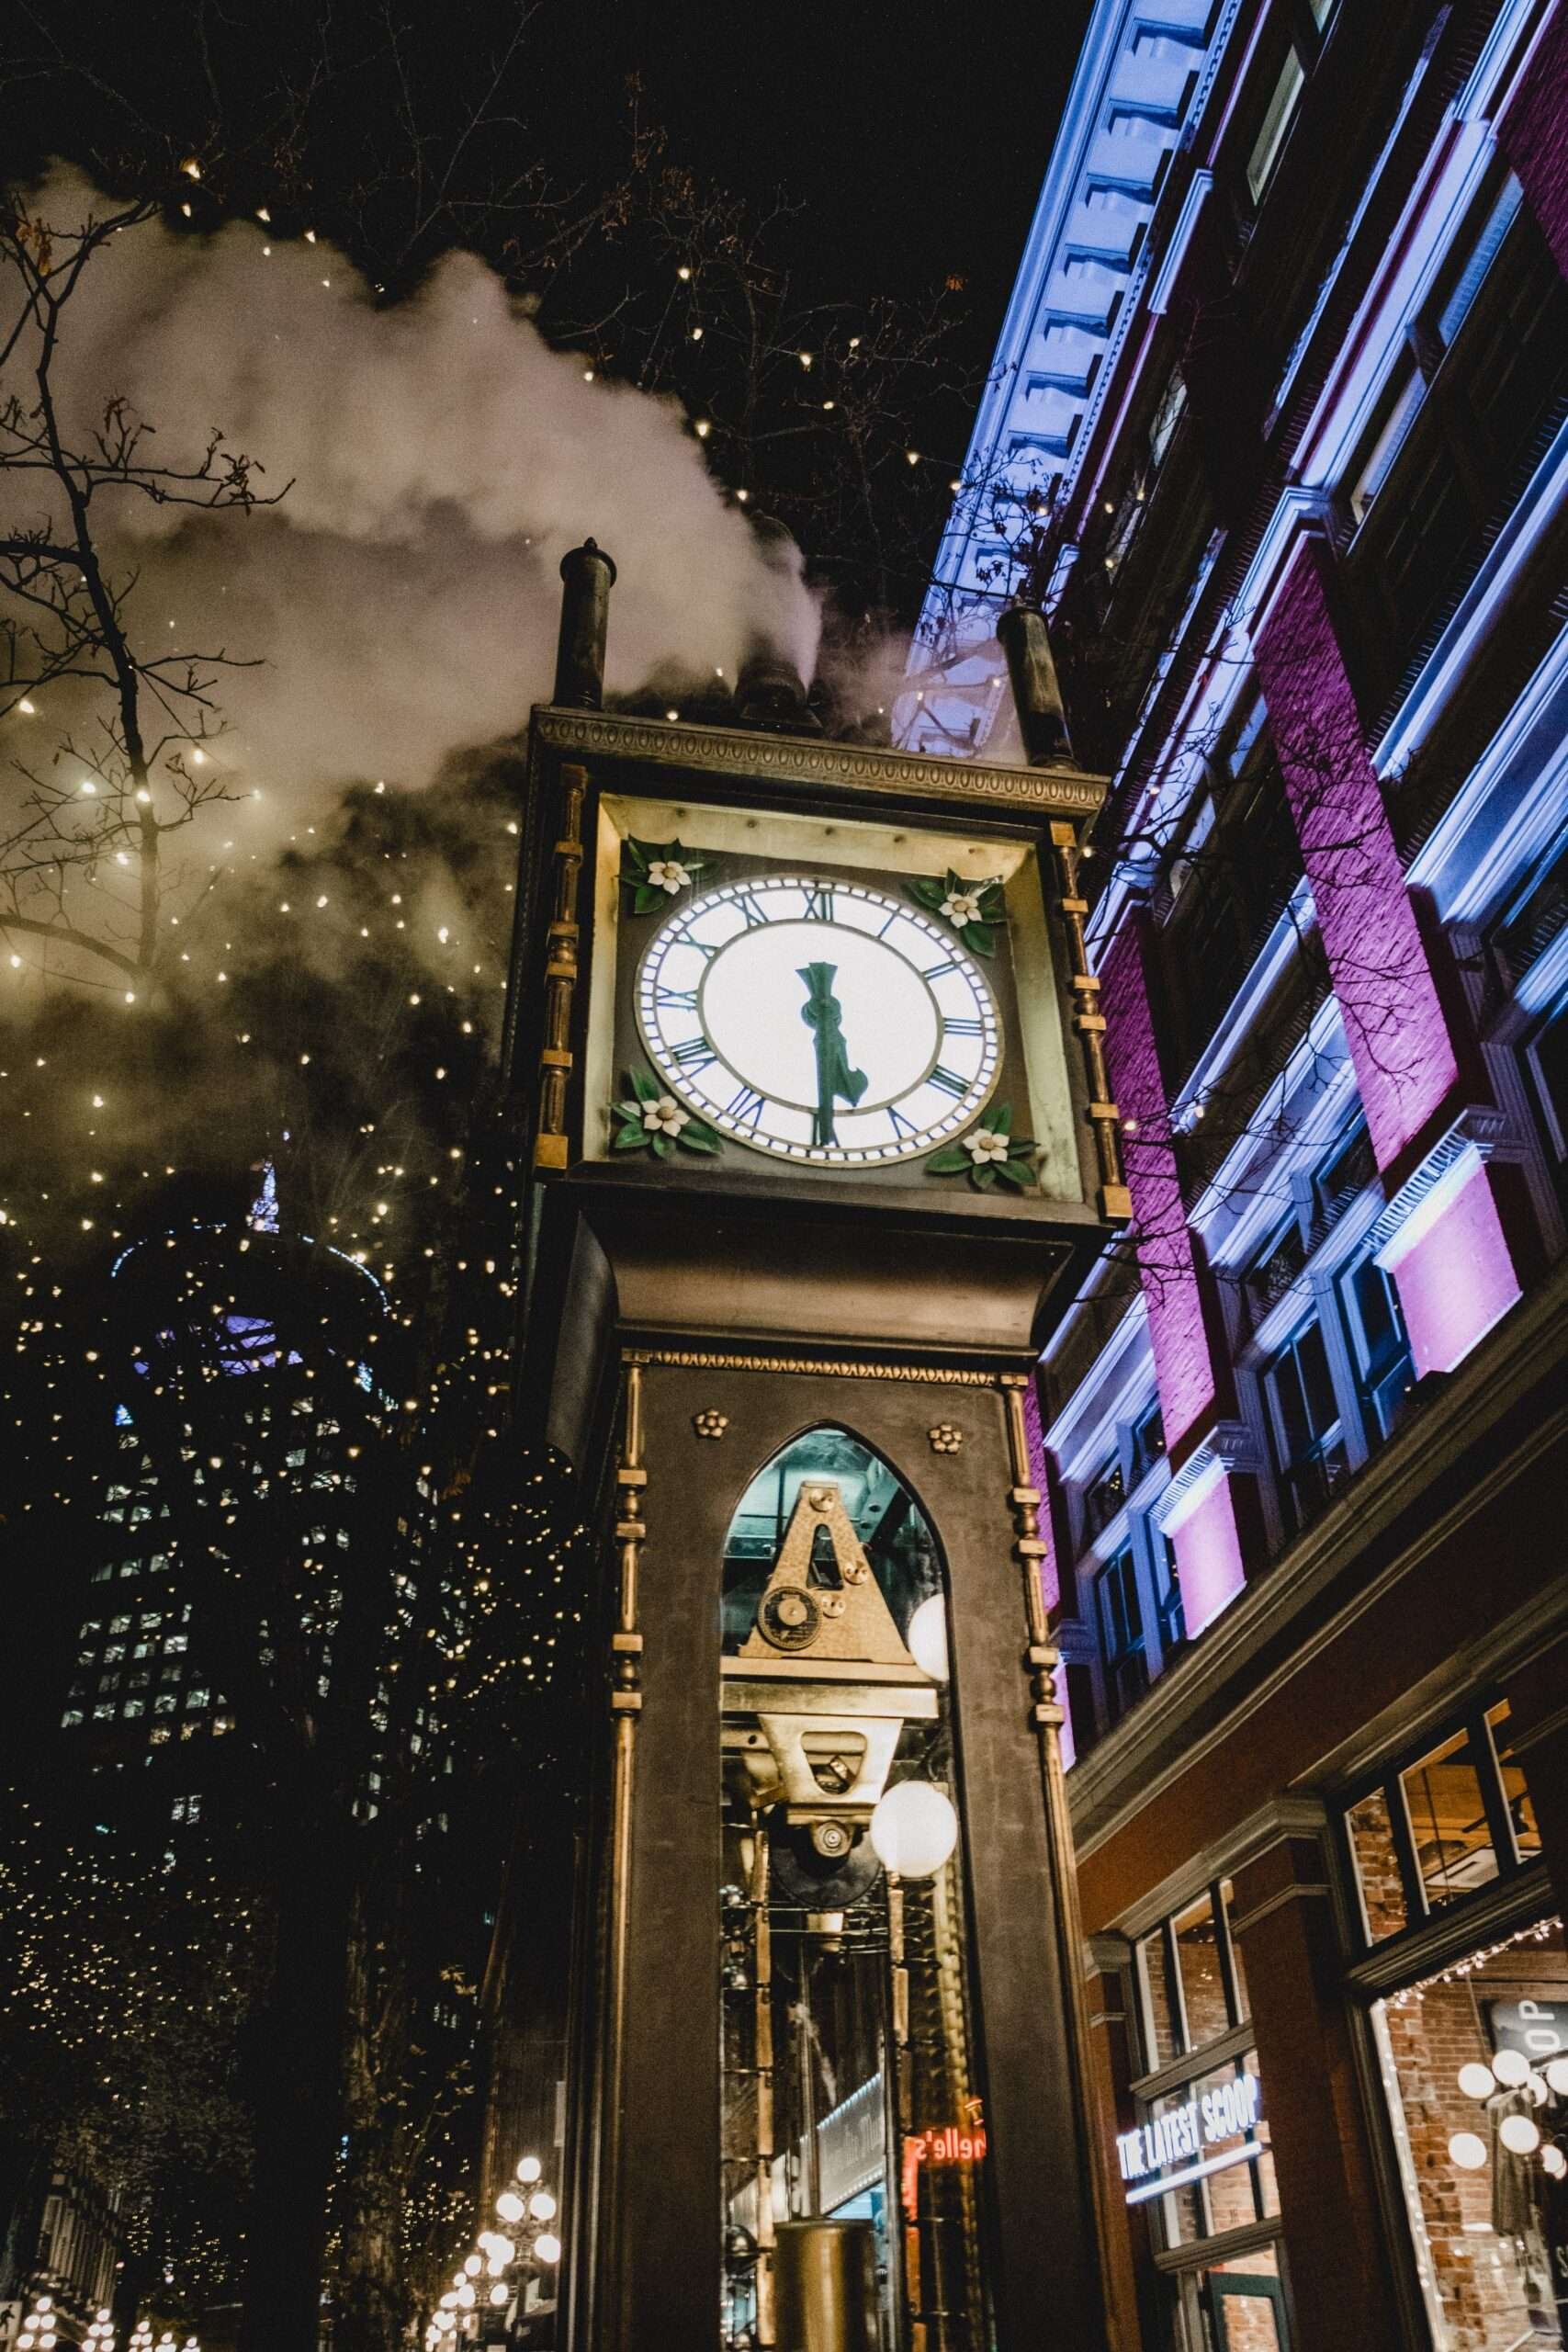 Clock in Gastown Vancouver